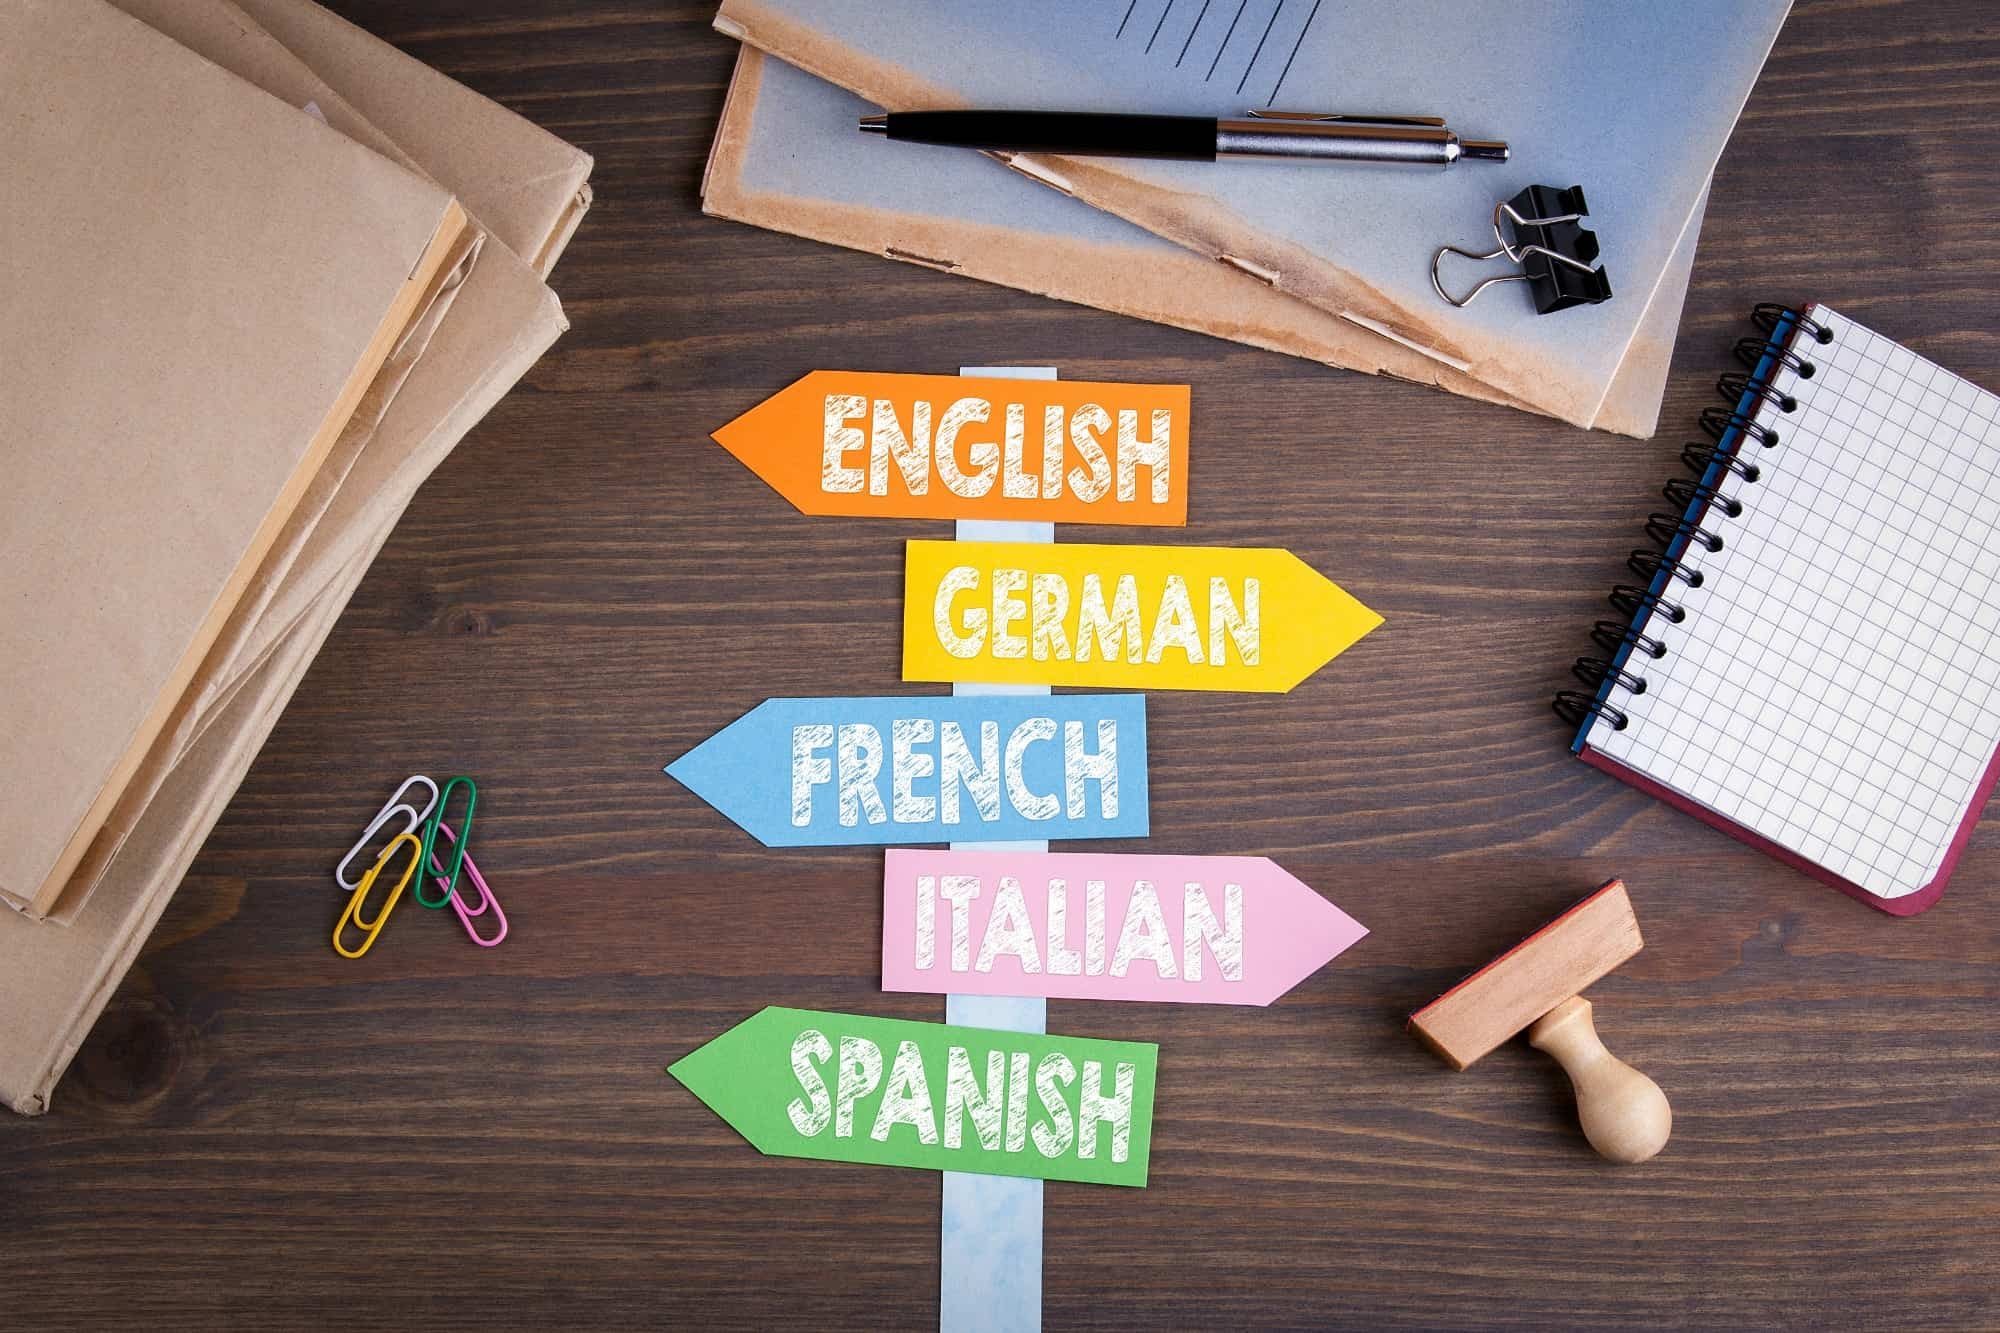 Czech job market, The Most In-Demand Languages On the Czech Job Market, Expats.cz Latest News & Articles - Prague and the Czech Republic, Expats.cz Latest News & Articles - Prague and the Czech Republic